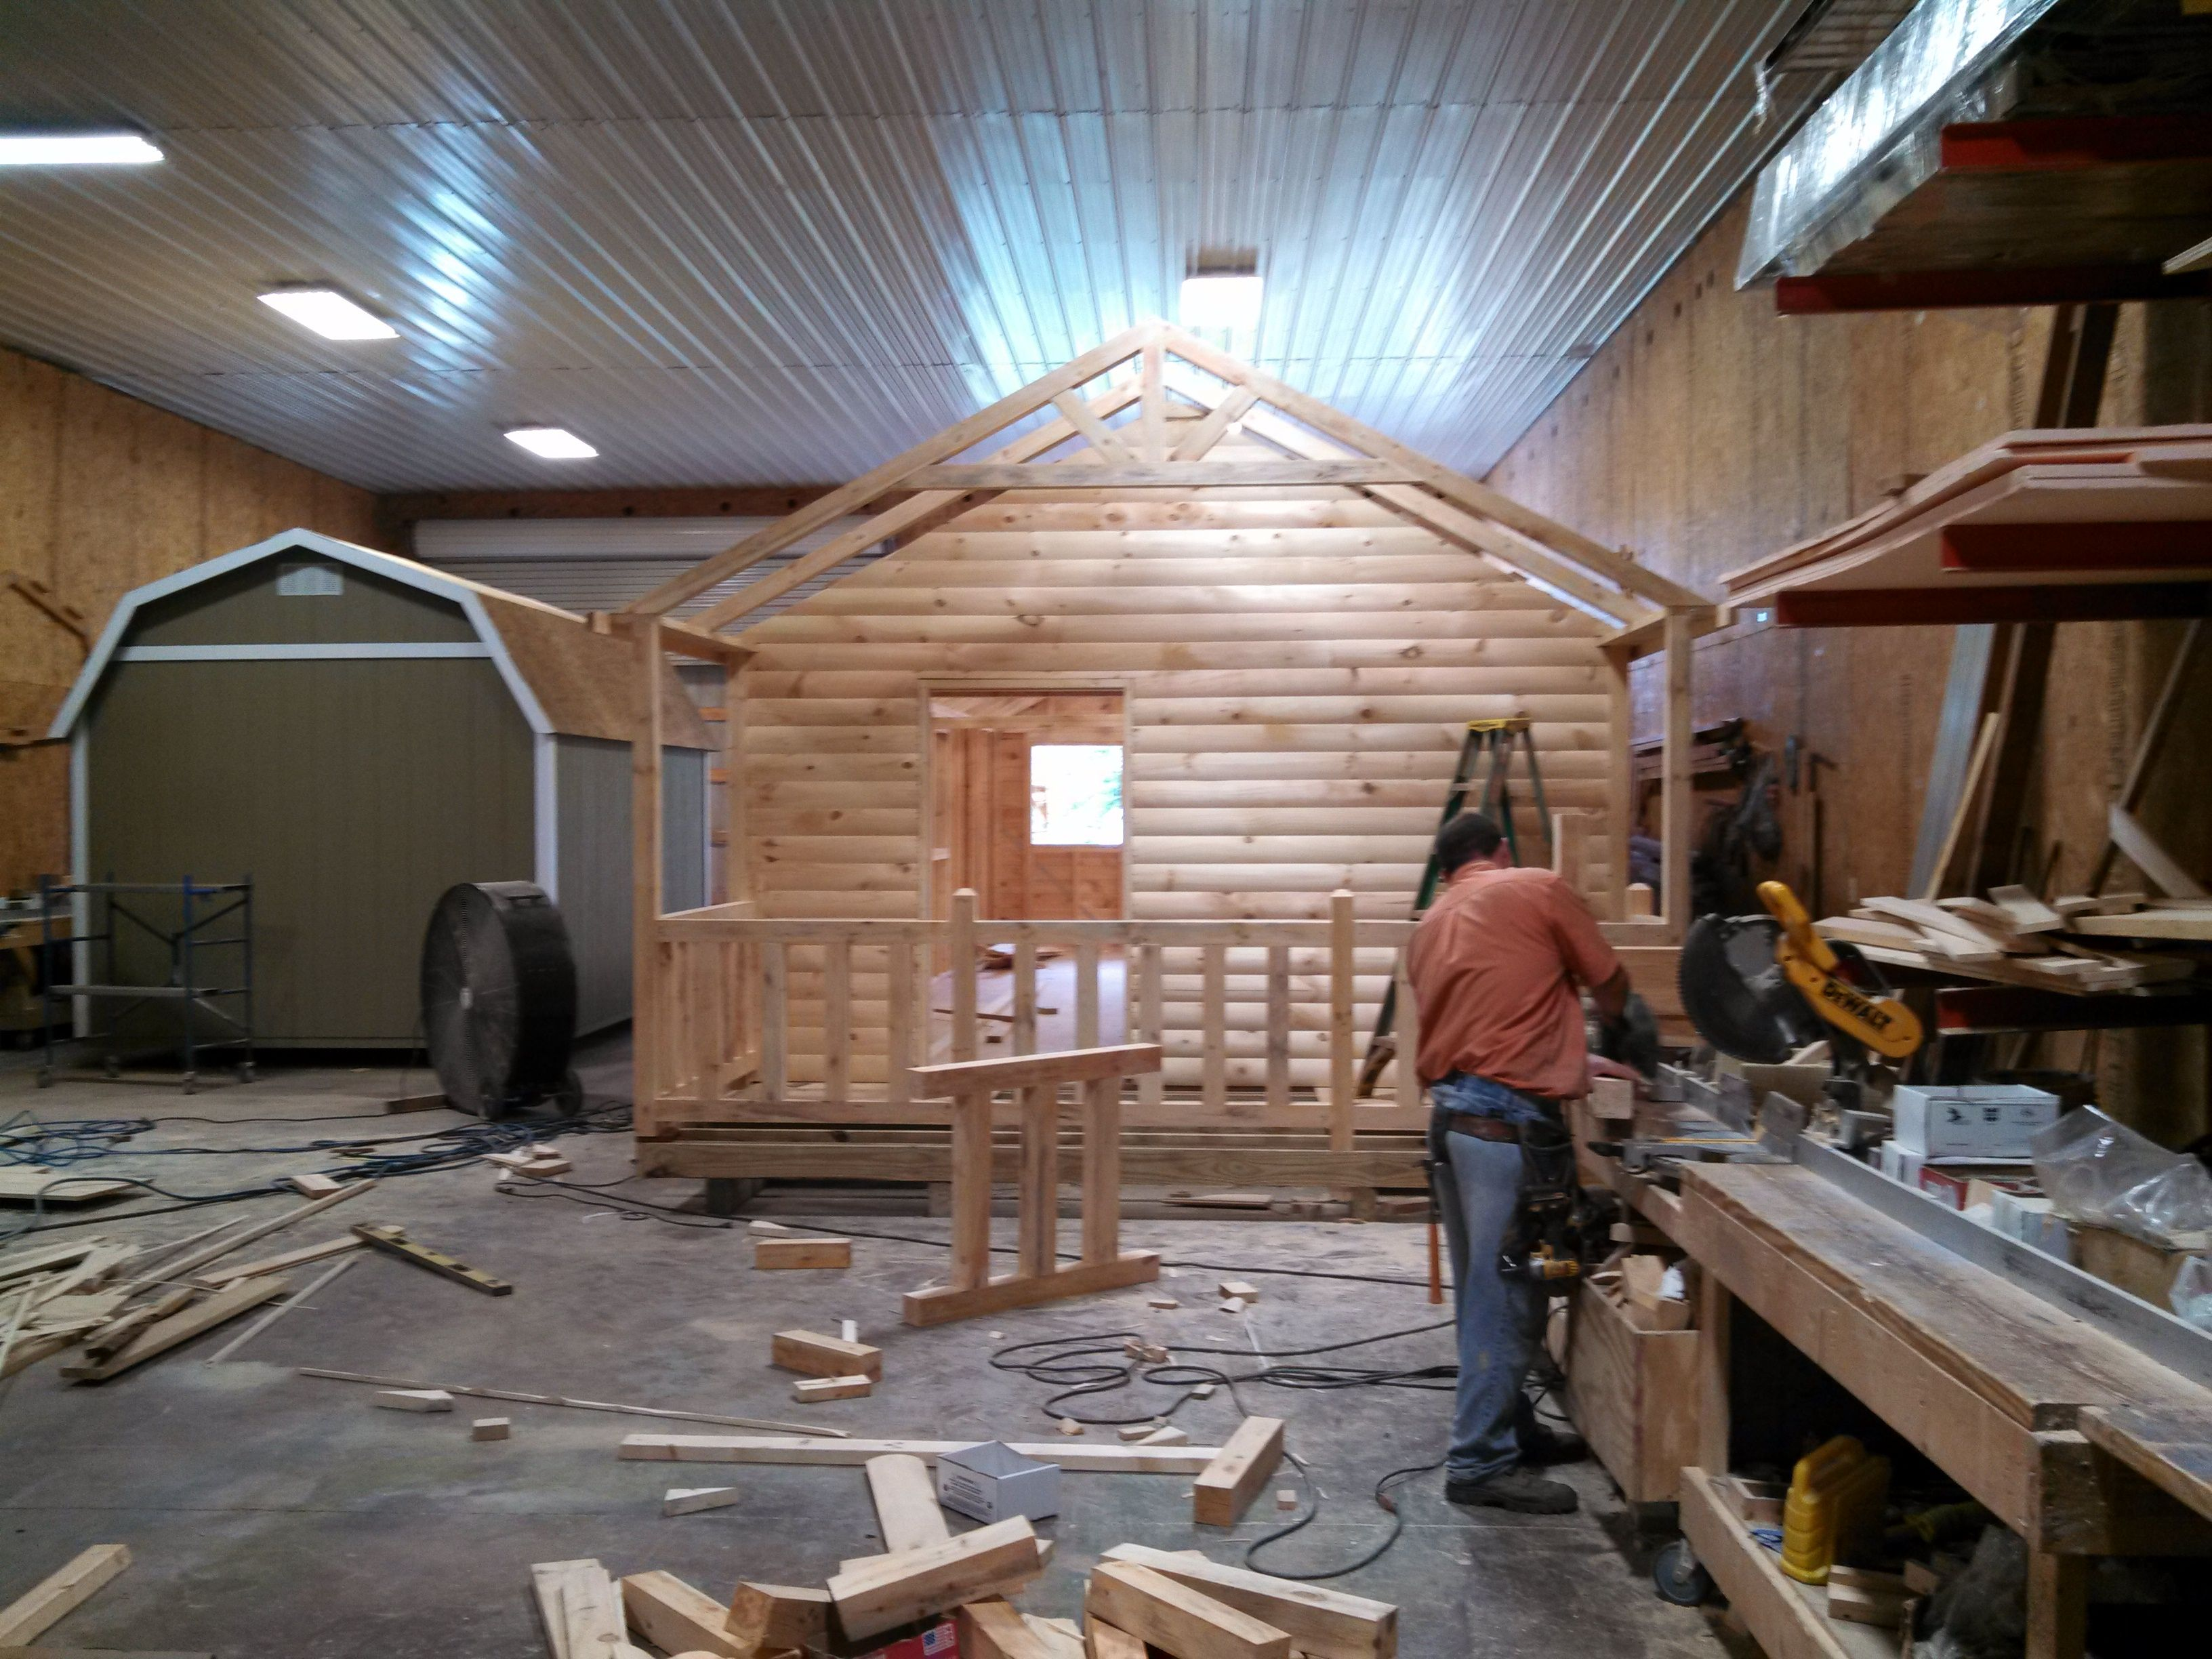 New 42u0027 Cabin Being Built On Location Outside Dickson, Tennessee. This Cabin  Has